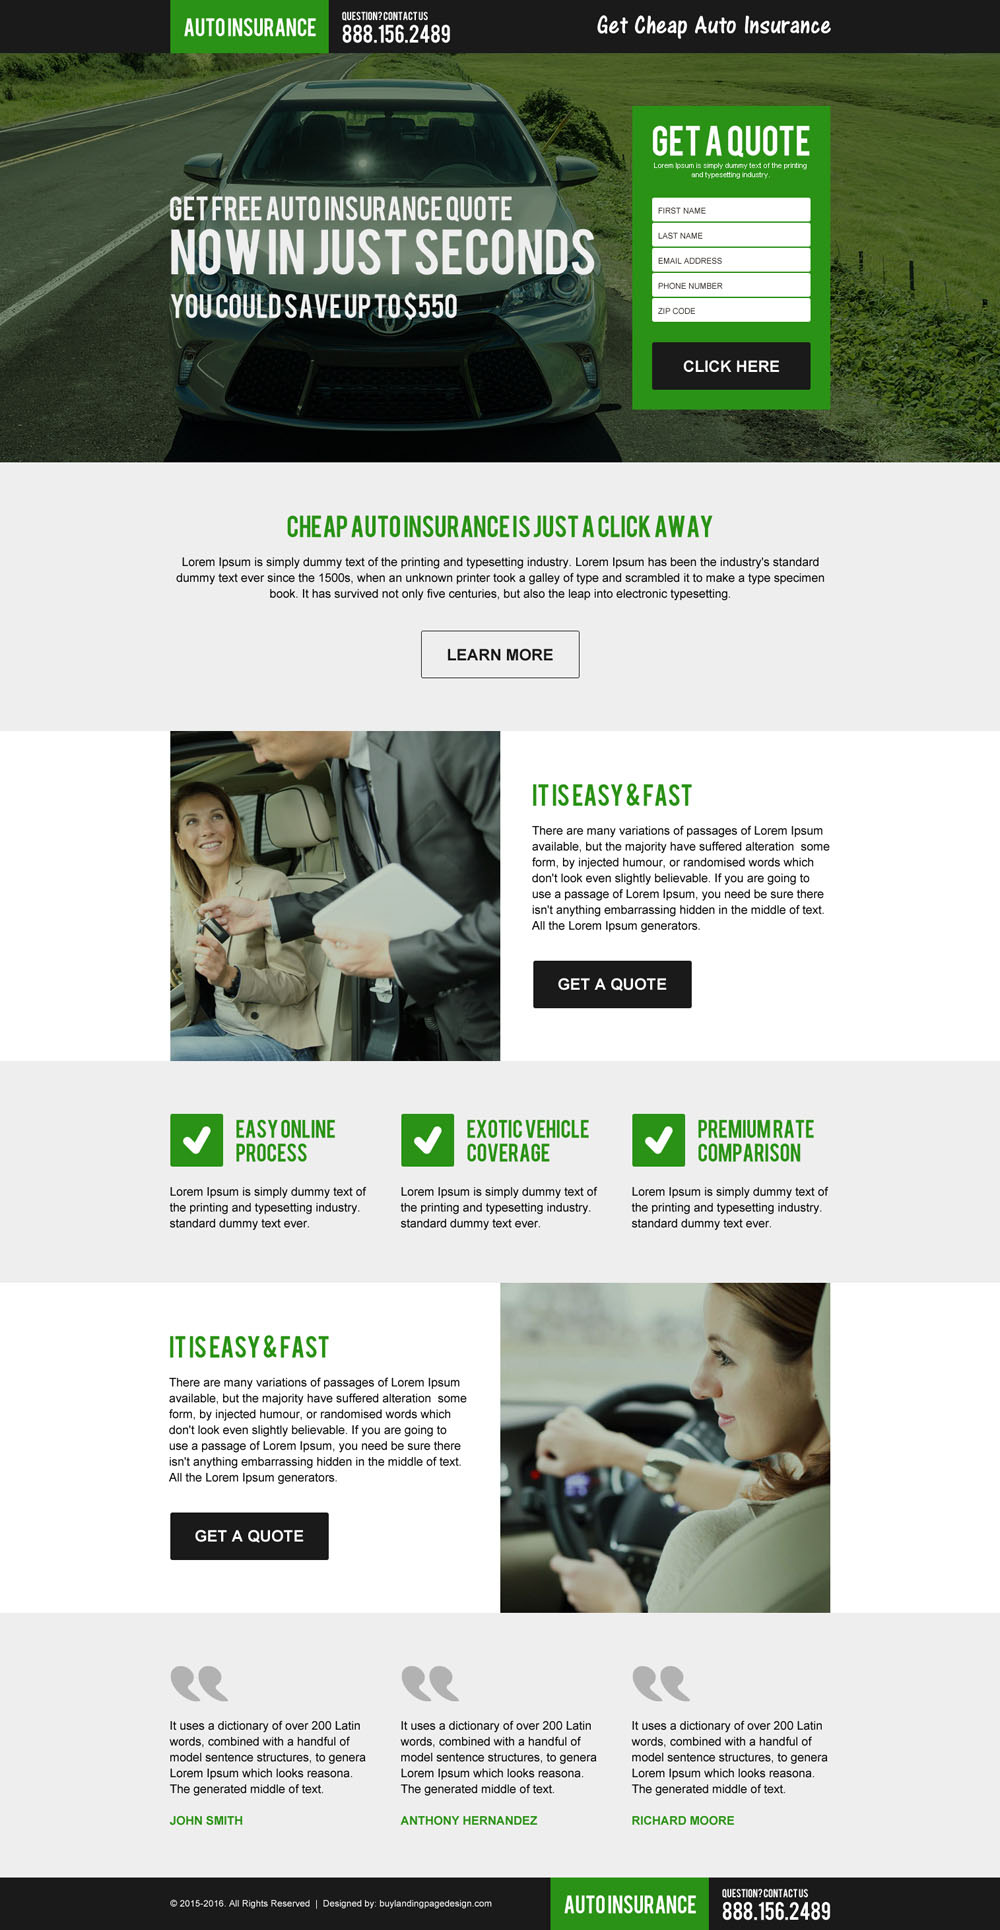 get-cheap-auto-insurance-free-quote-lead-capture-landing-page-design-045